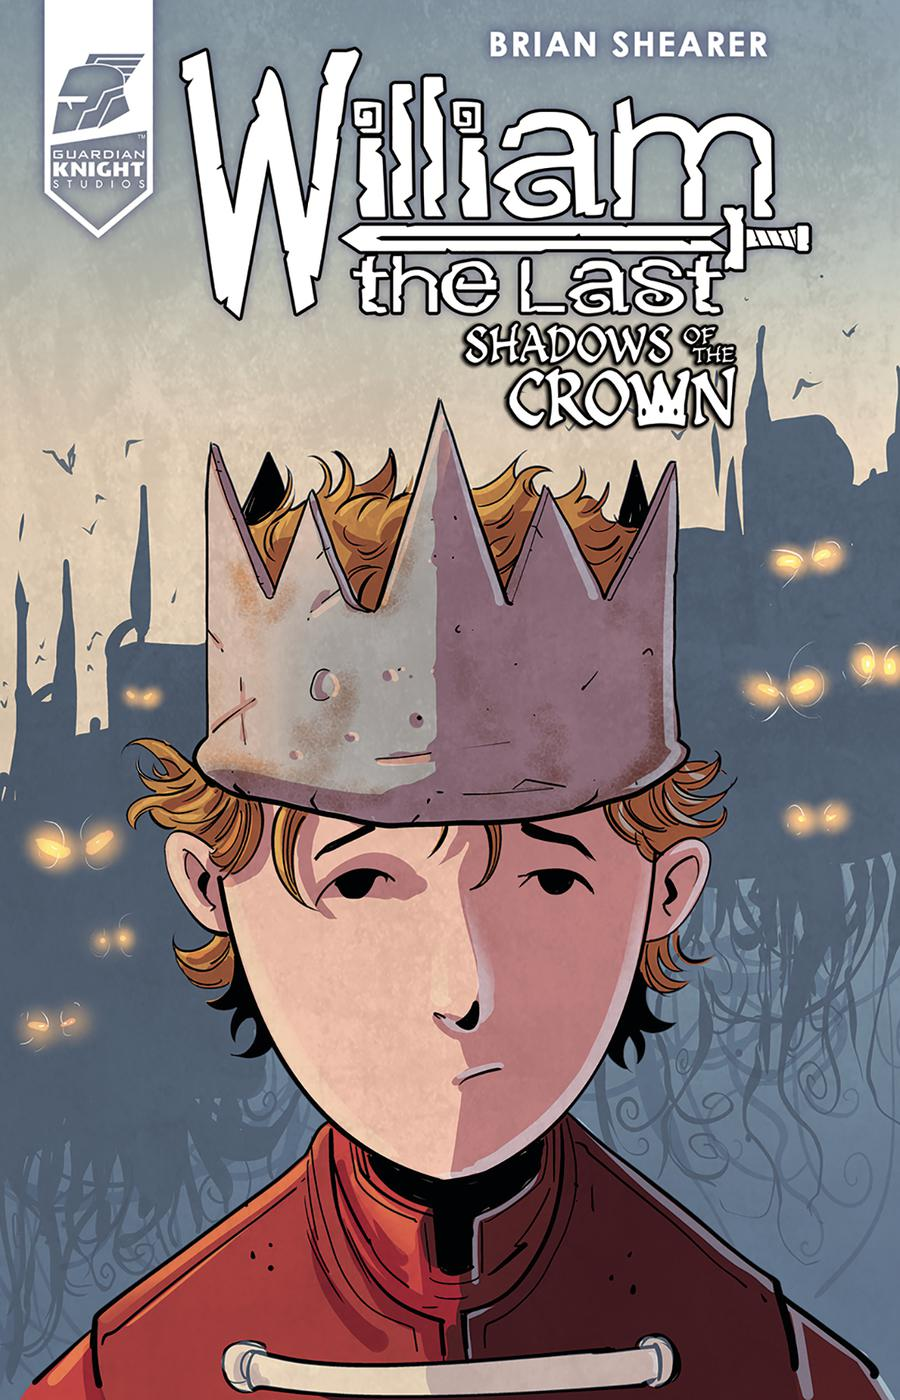 William The Last Shadows Of The Crown #2